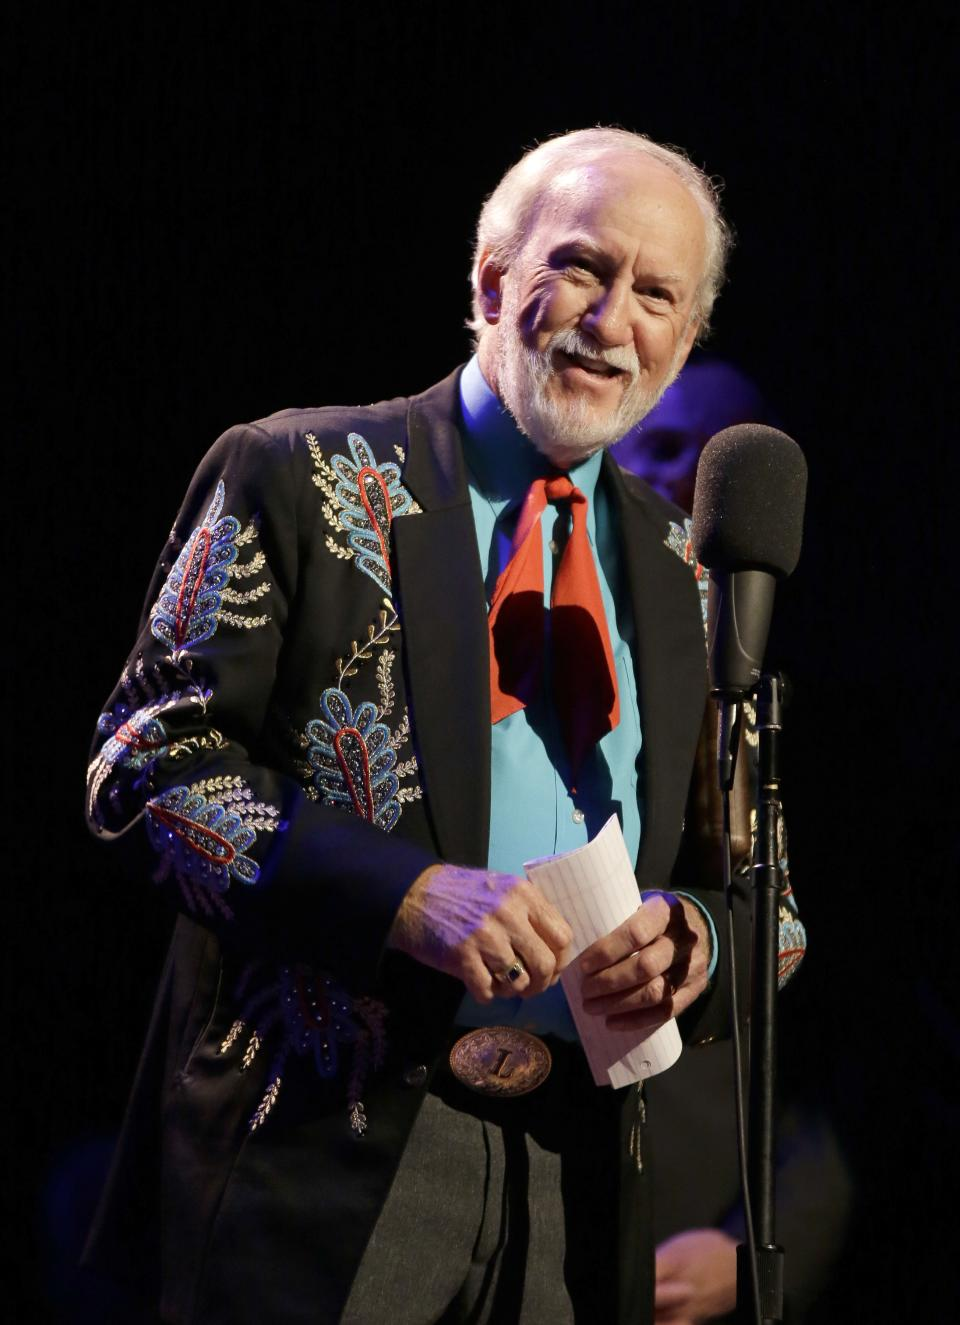 Doyle Lawson speaks after being inducted into the International Bluegrass Music Hall of Fame on Thursday, Sept. 27, 2012, in Nashville, Tenn. (AP Photo/Mark Humphrey)